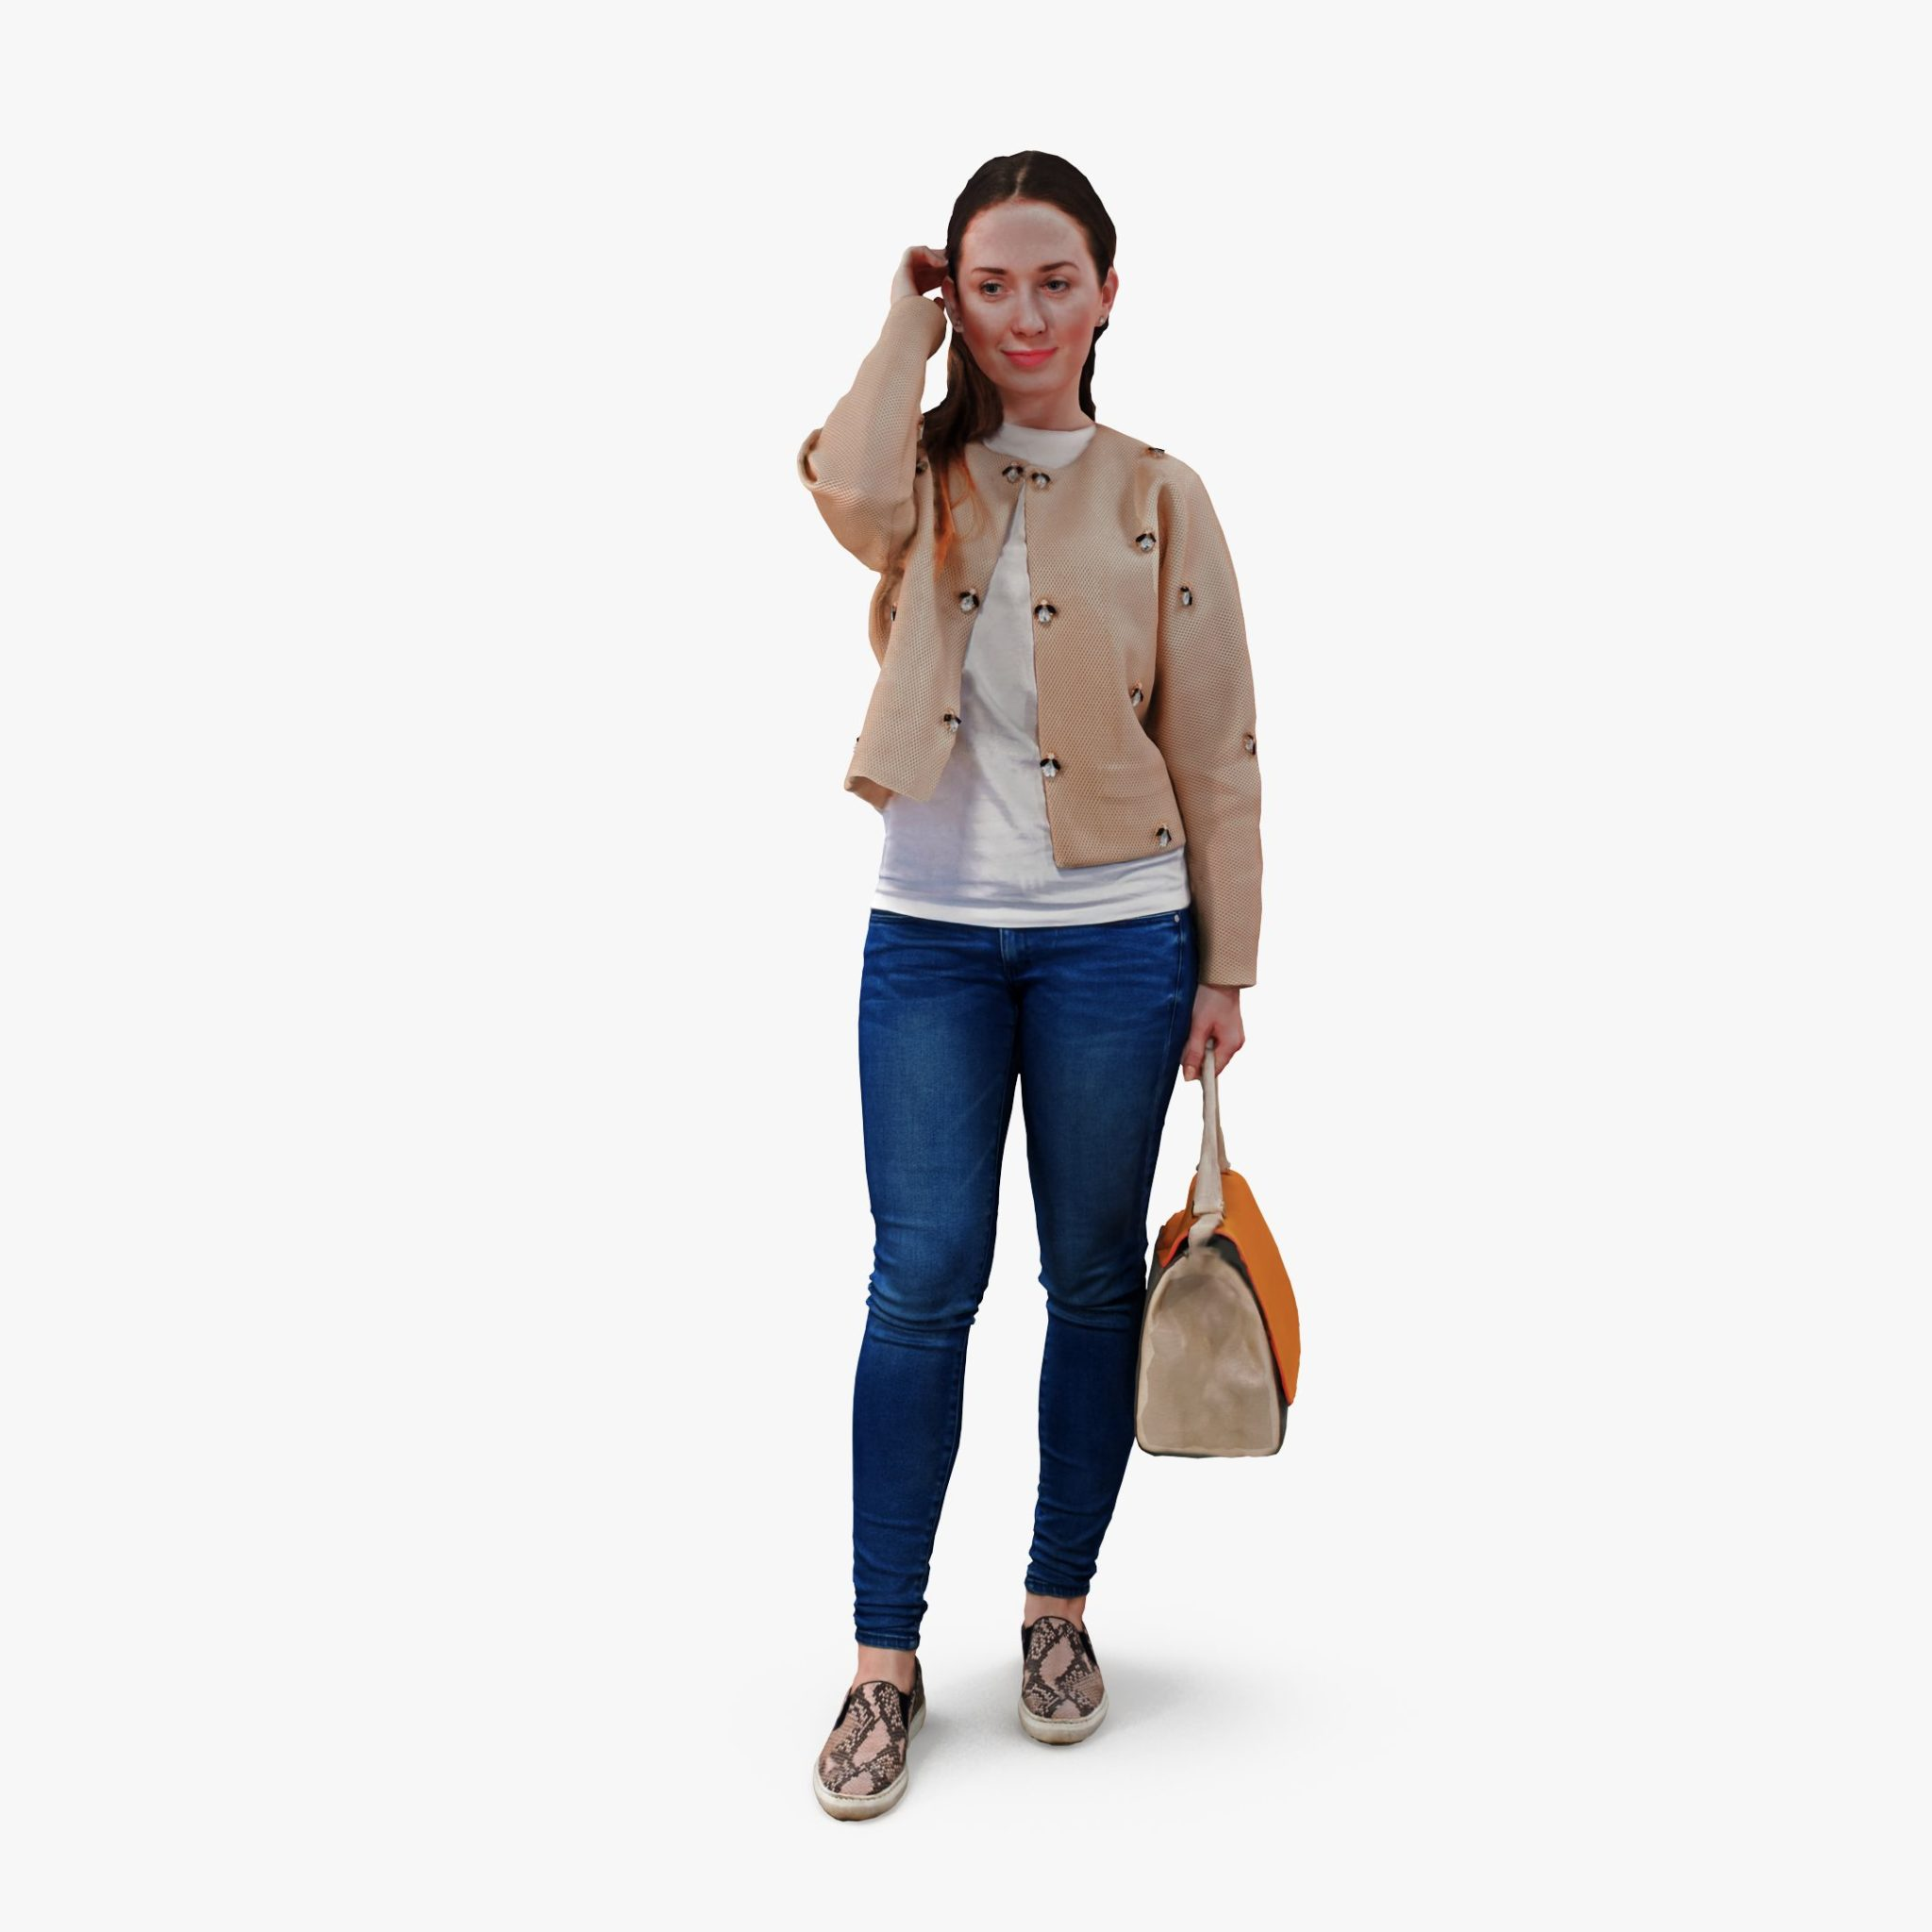 Girl Holding Bag 3D Model | 3DTree Scanning Studio